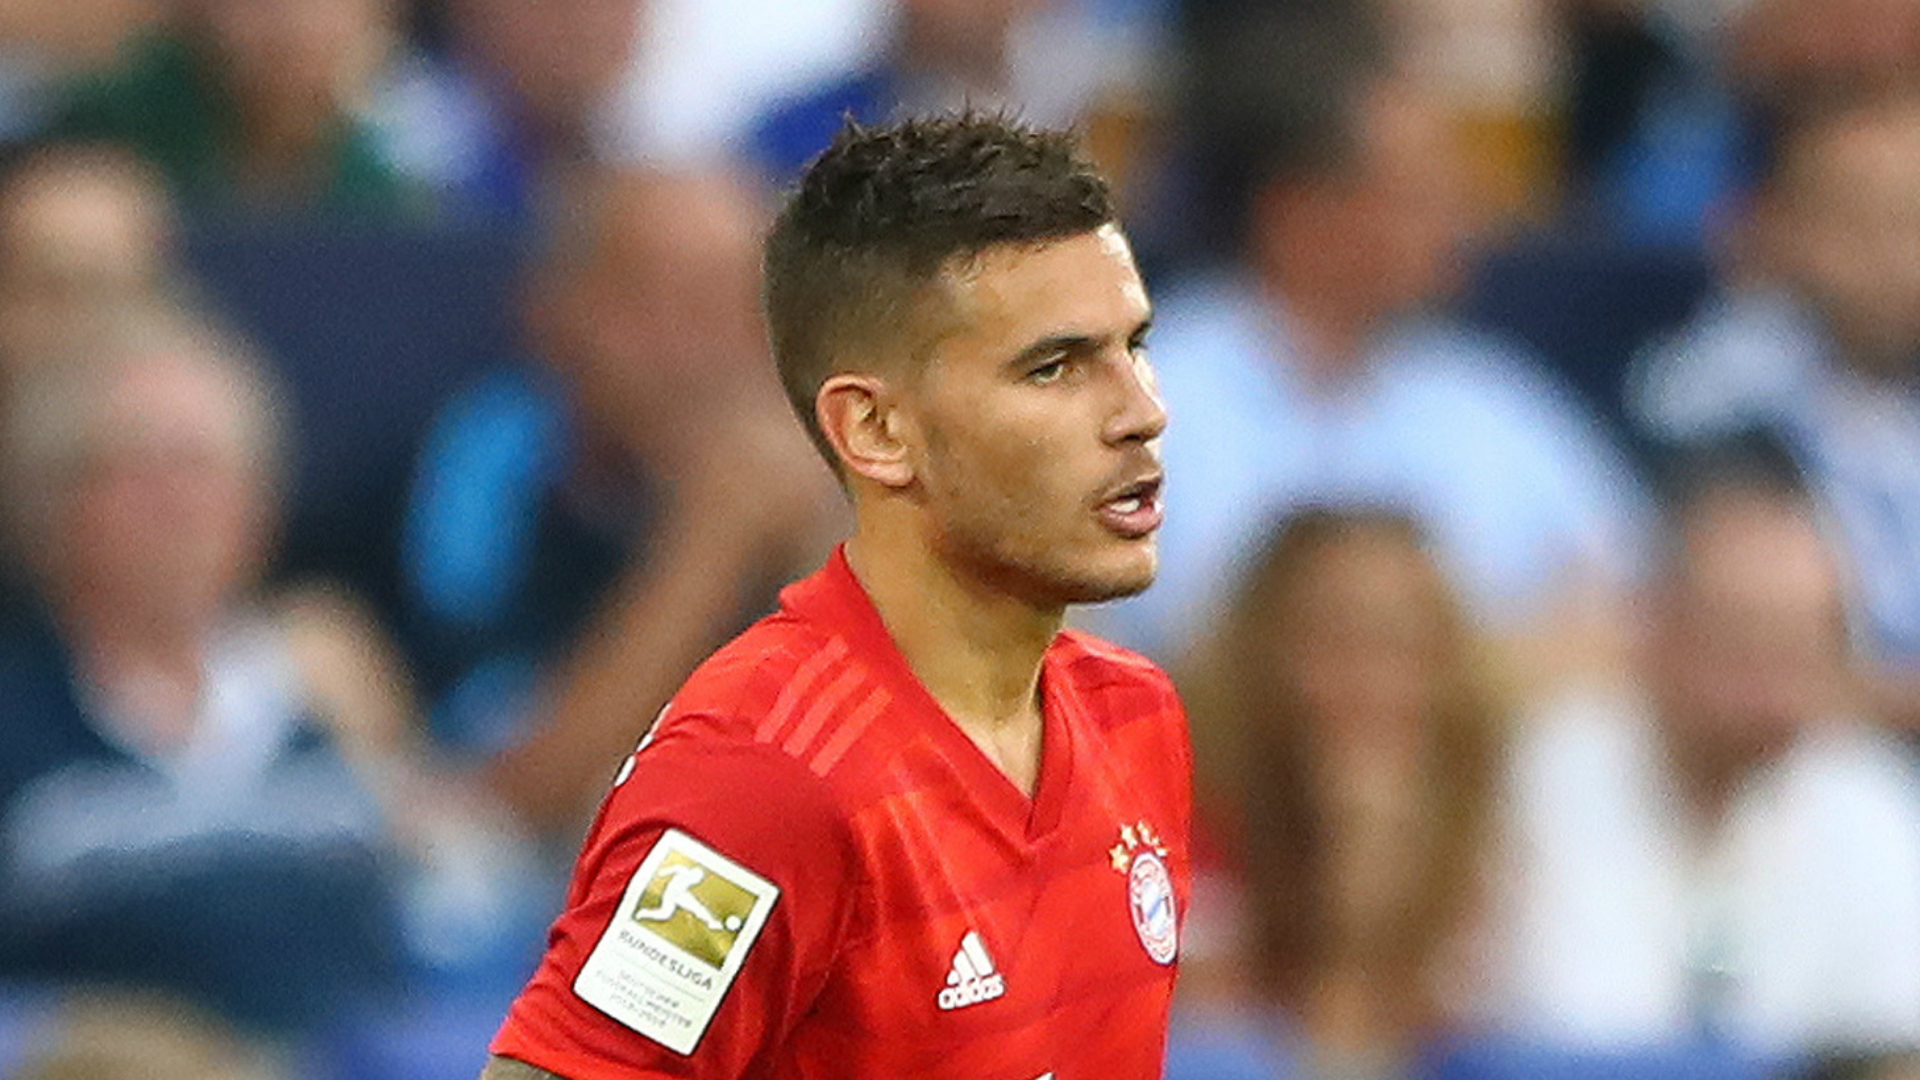 Lucas Hernandez ready to play against Iceland, says Deschamps